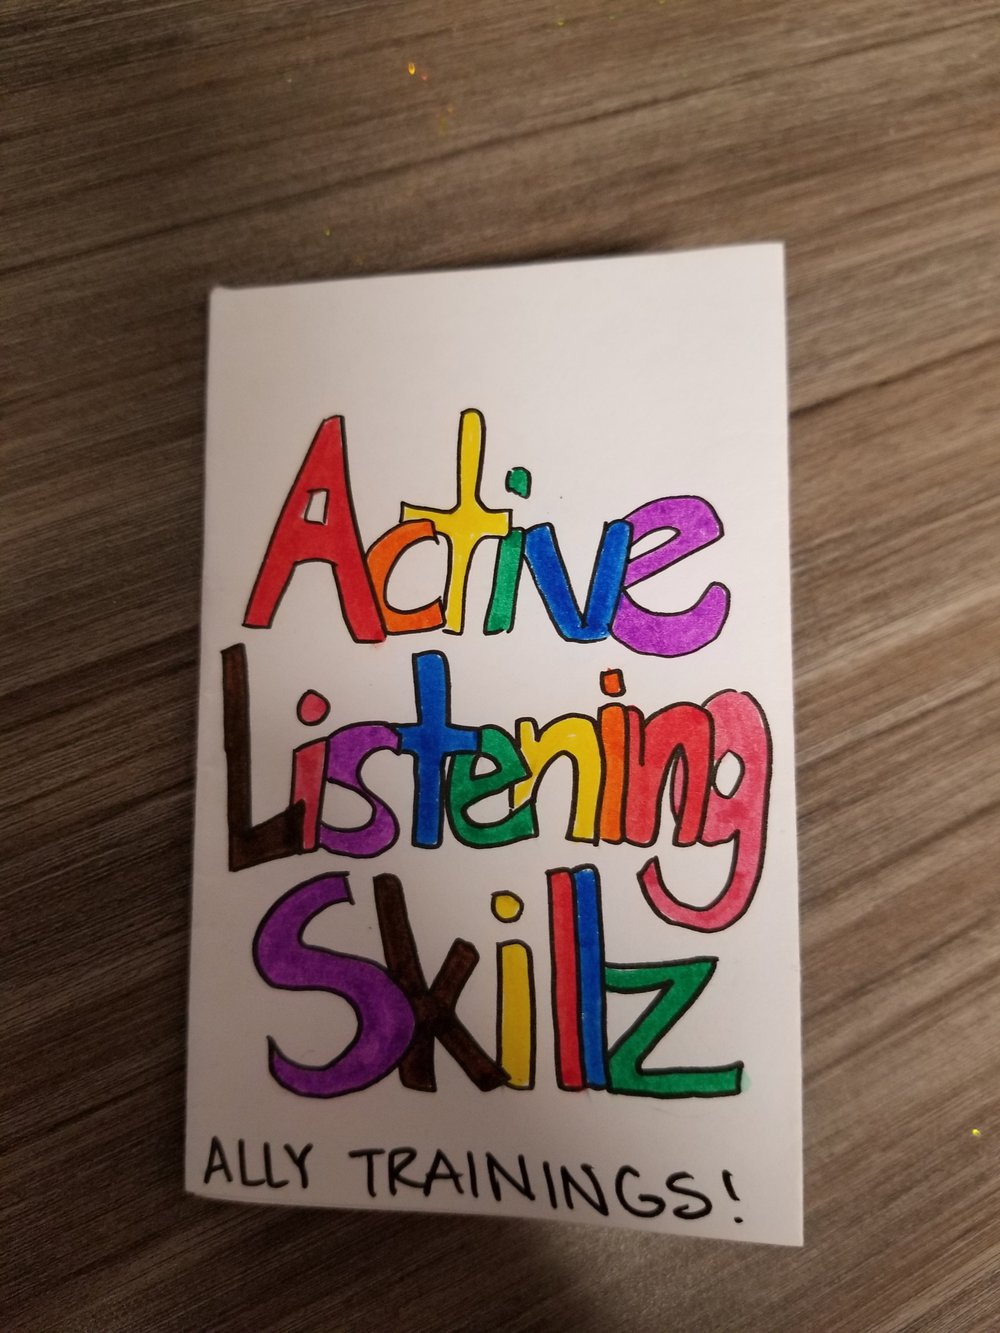 Zine on Active Listening Skills - Made by SafeZones@SDSU intern Maria in 2018Click here to download